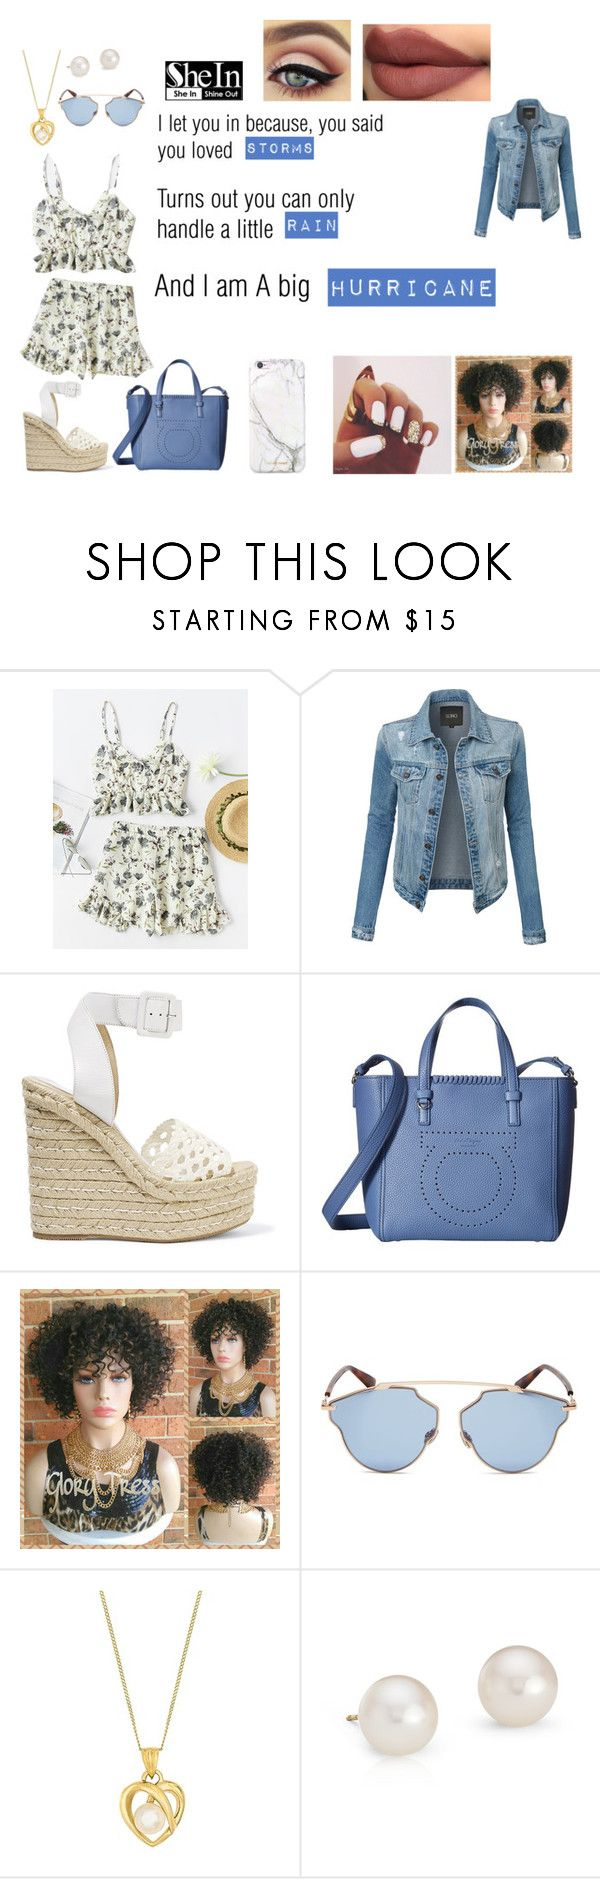 """""""Storms, Rain, And A Hurricane"""" by mistress-sapphire ❤ liked on Polyvore featuring LE3NO, Paloma Barceló, Salvatore Ferragamo, Christian Dior, Blue Nile and russell+hazel"""